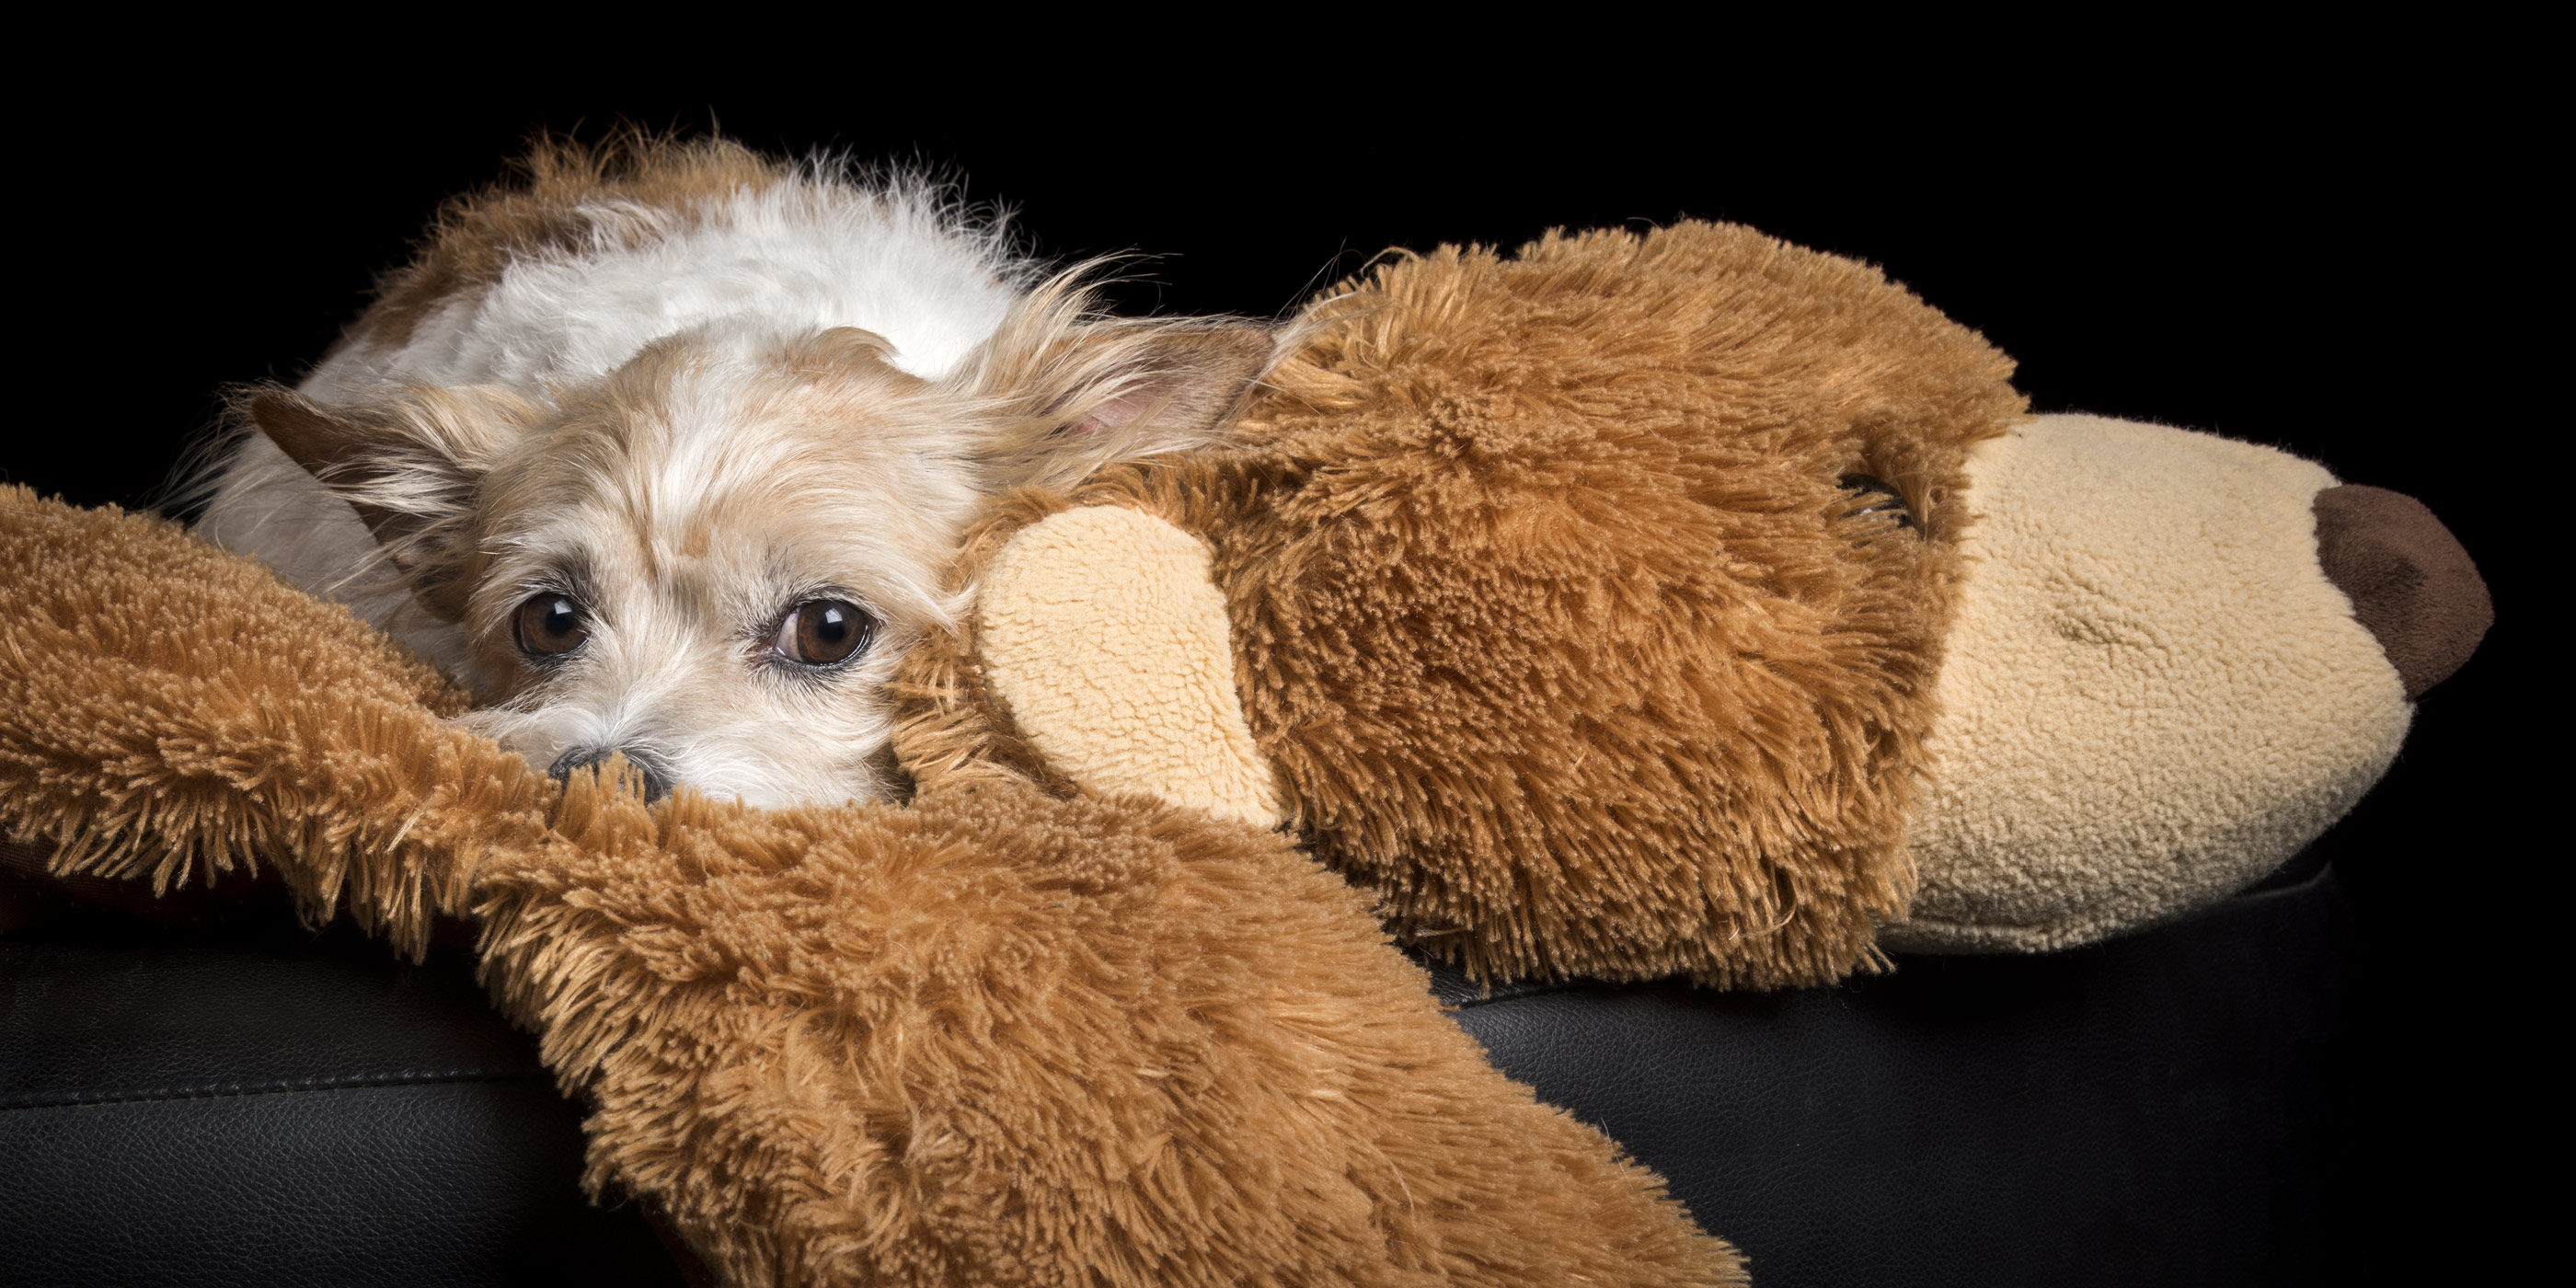 terrier chihuahua cross snuggling with toy